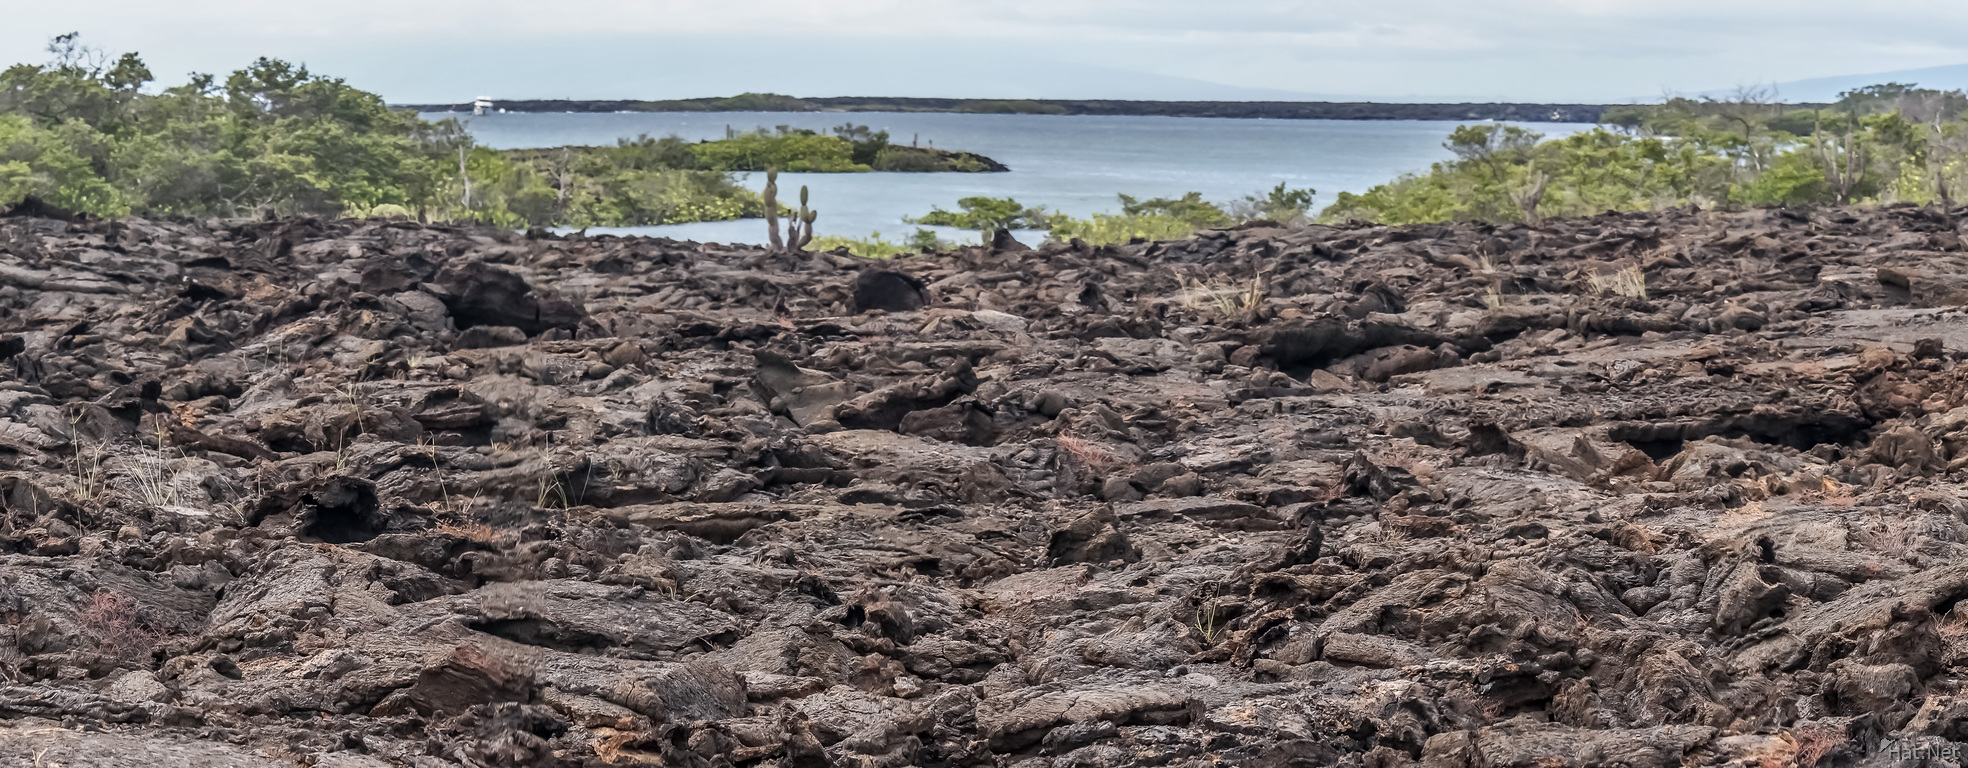 Lava field of Punta Moreno